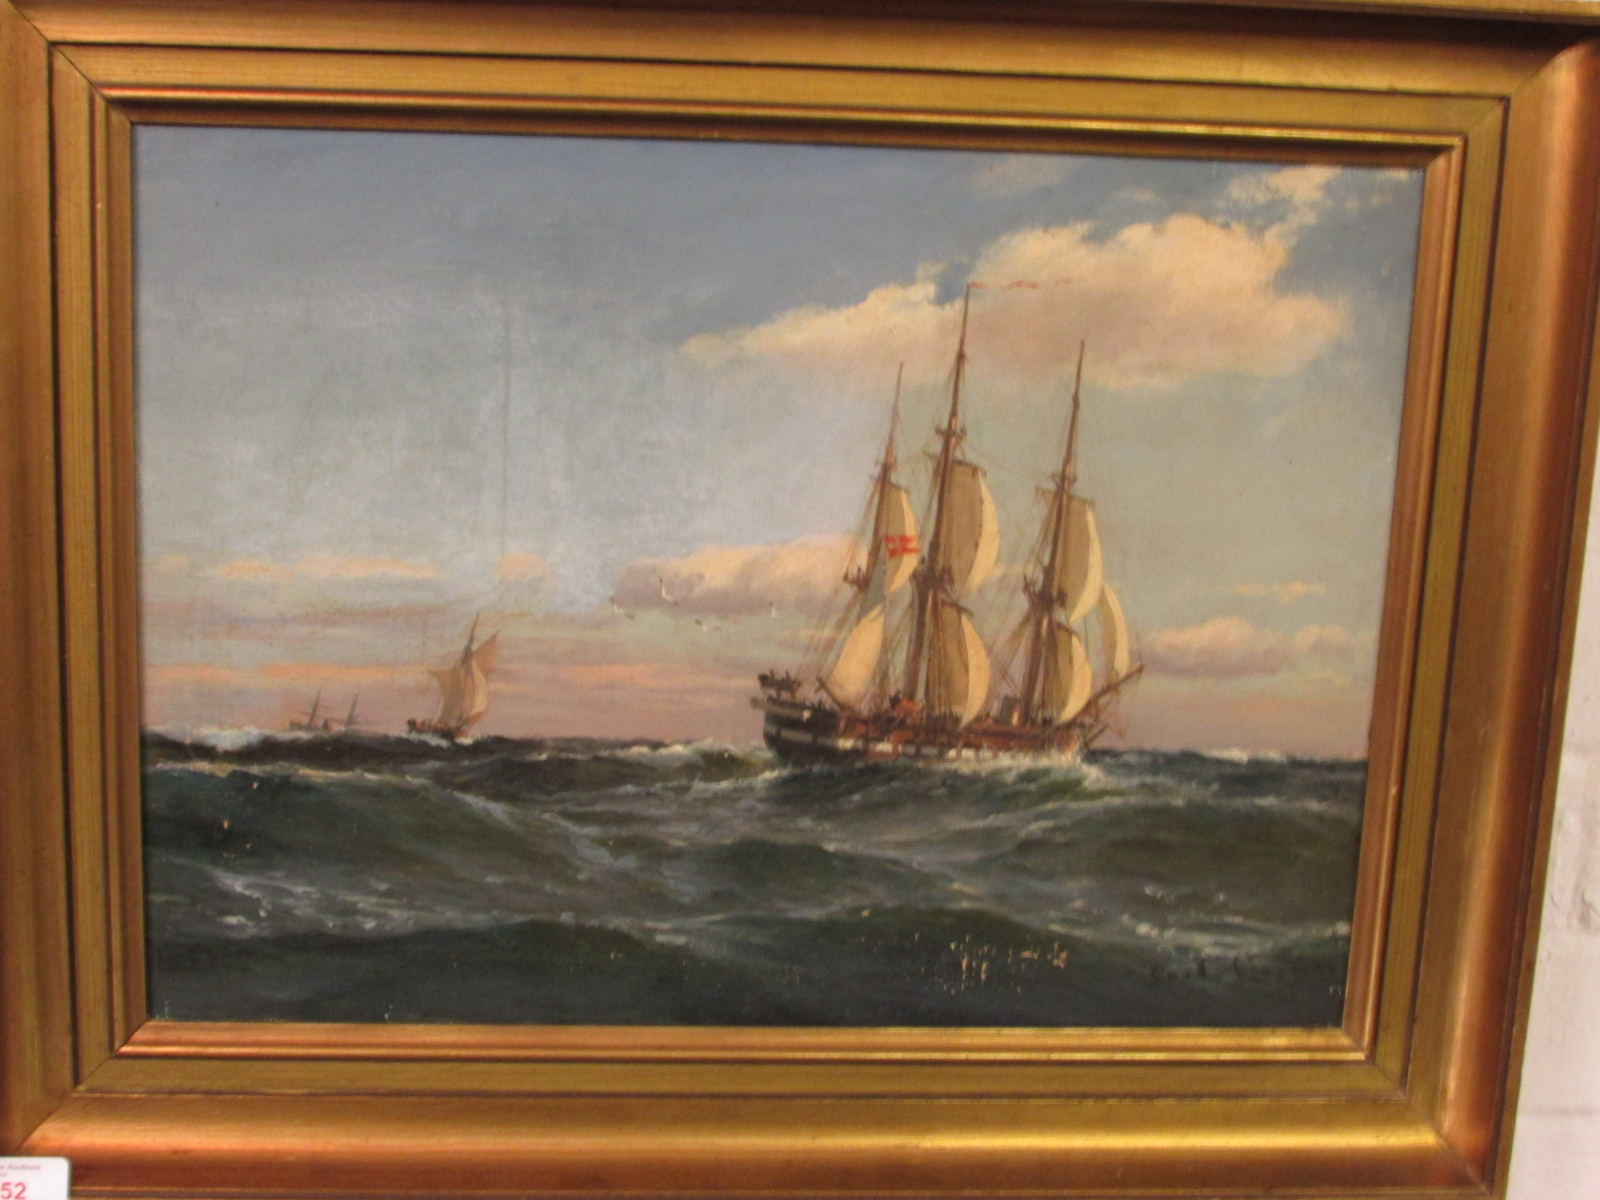 Lot 52 - Three masted sailing ship on rough seas, oil on canvas, signed Carl Locher lower right, (33cm x